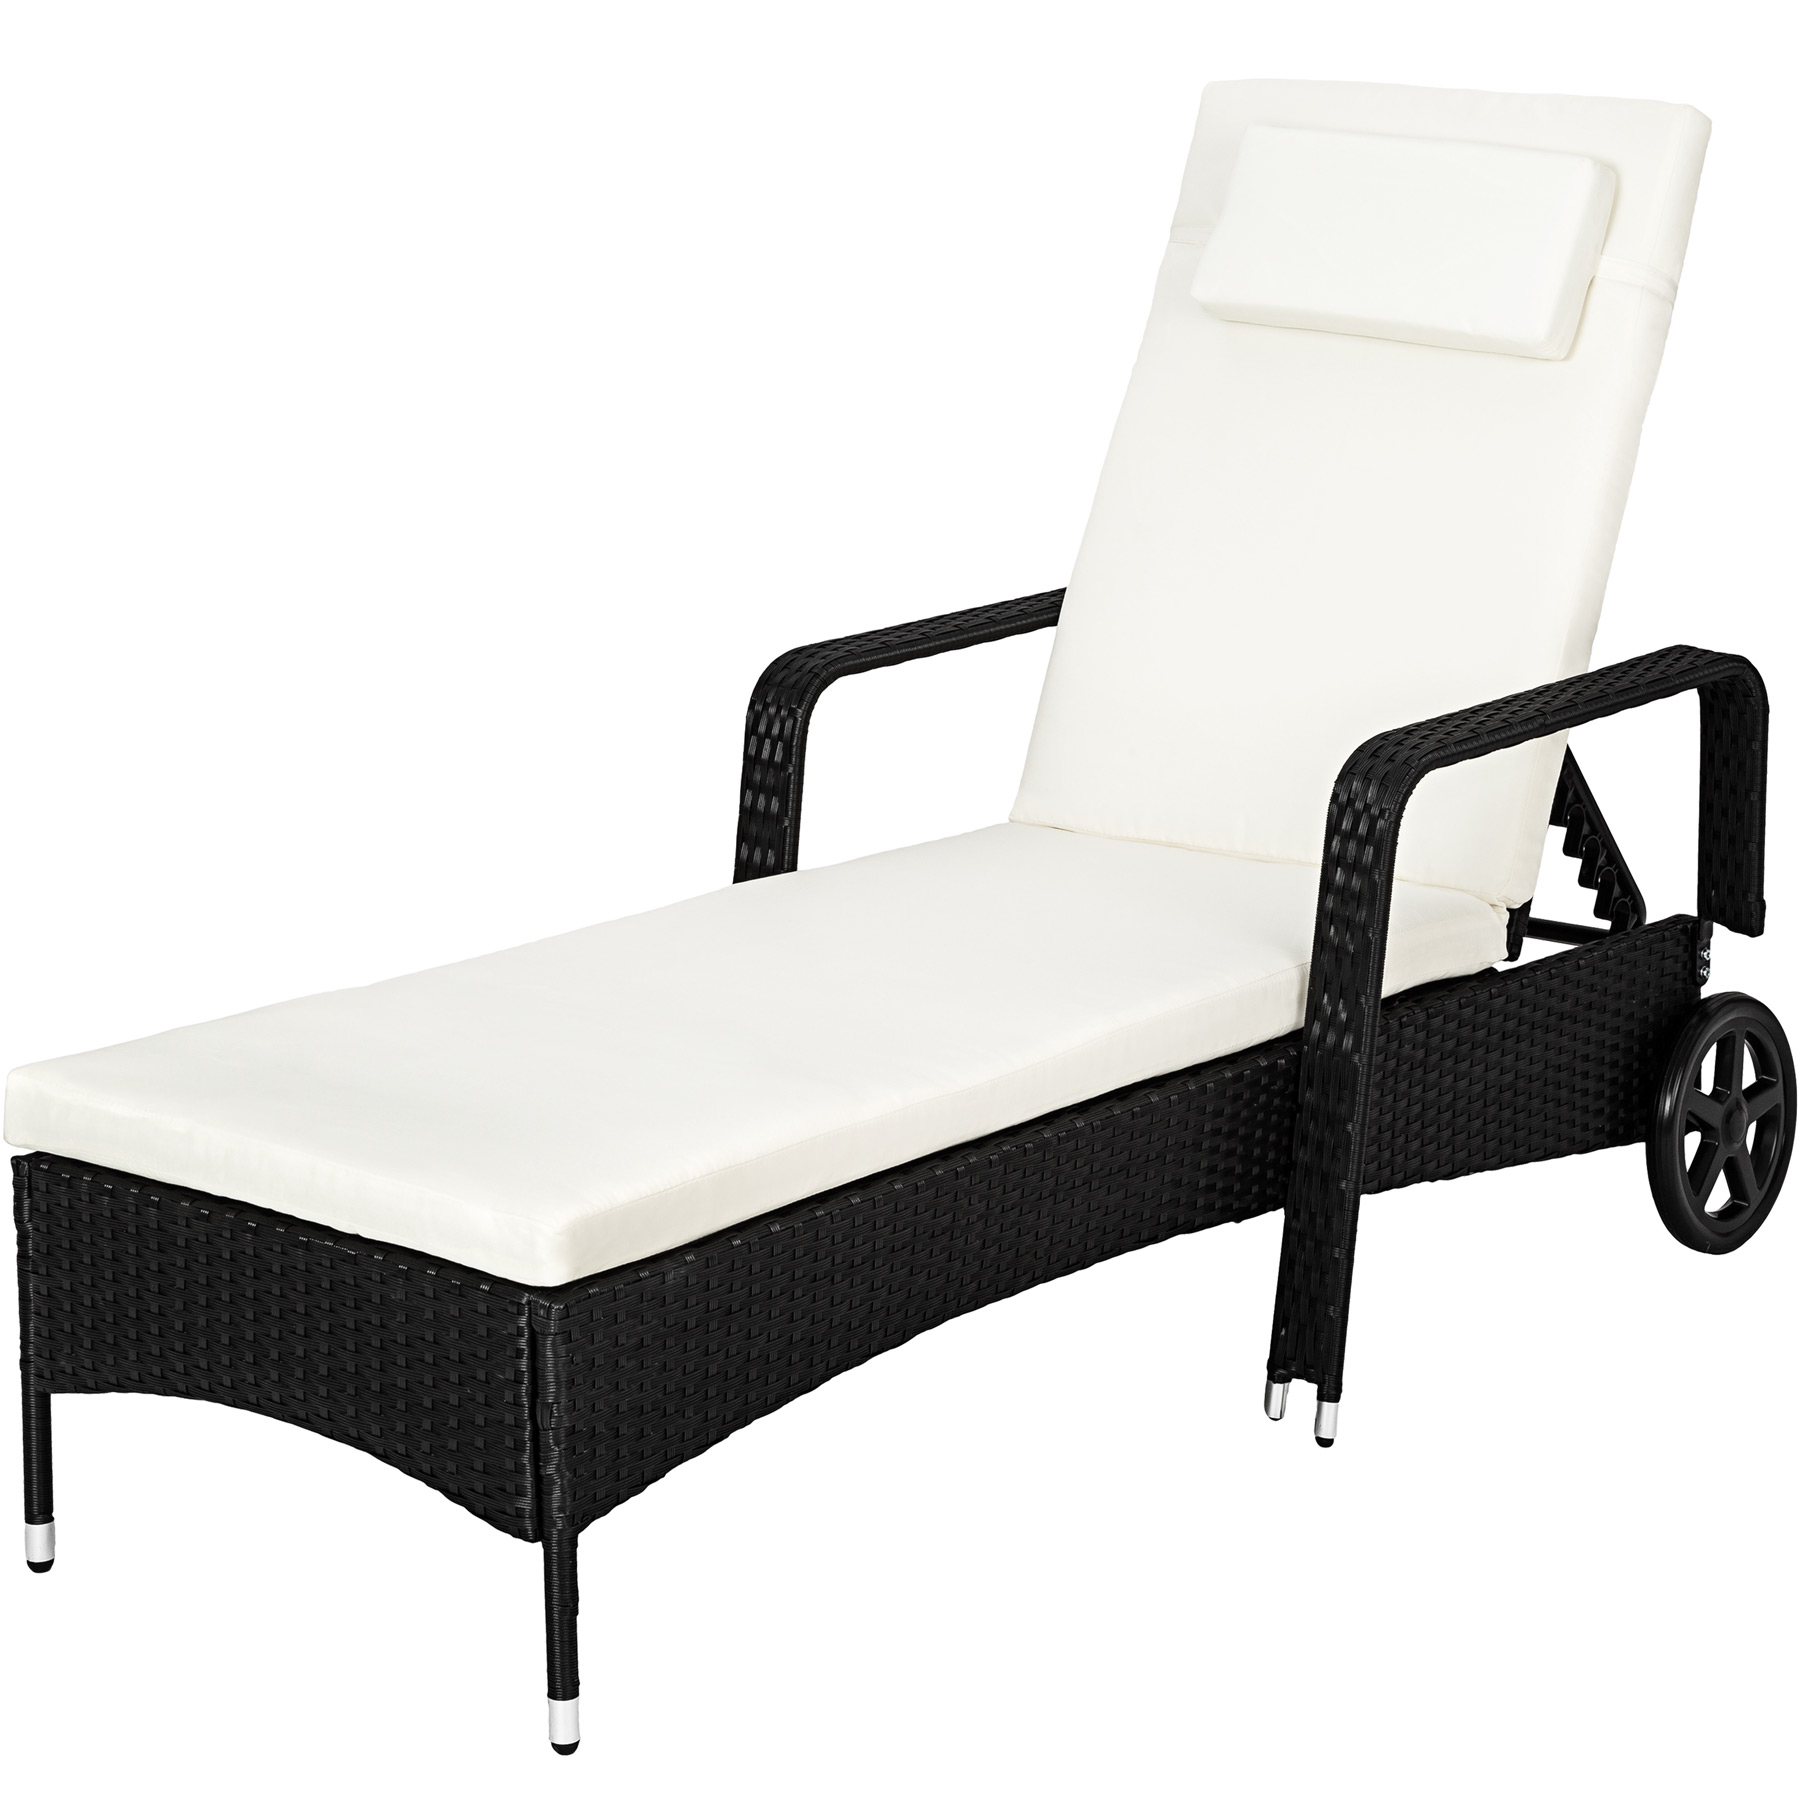 chaise longue bain de soleil meuble de jardin en poly rotin transat ebay. Black Bedroom Furniture Sets. Home Design Ideas